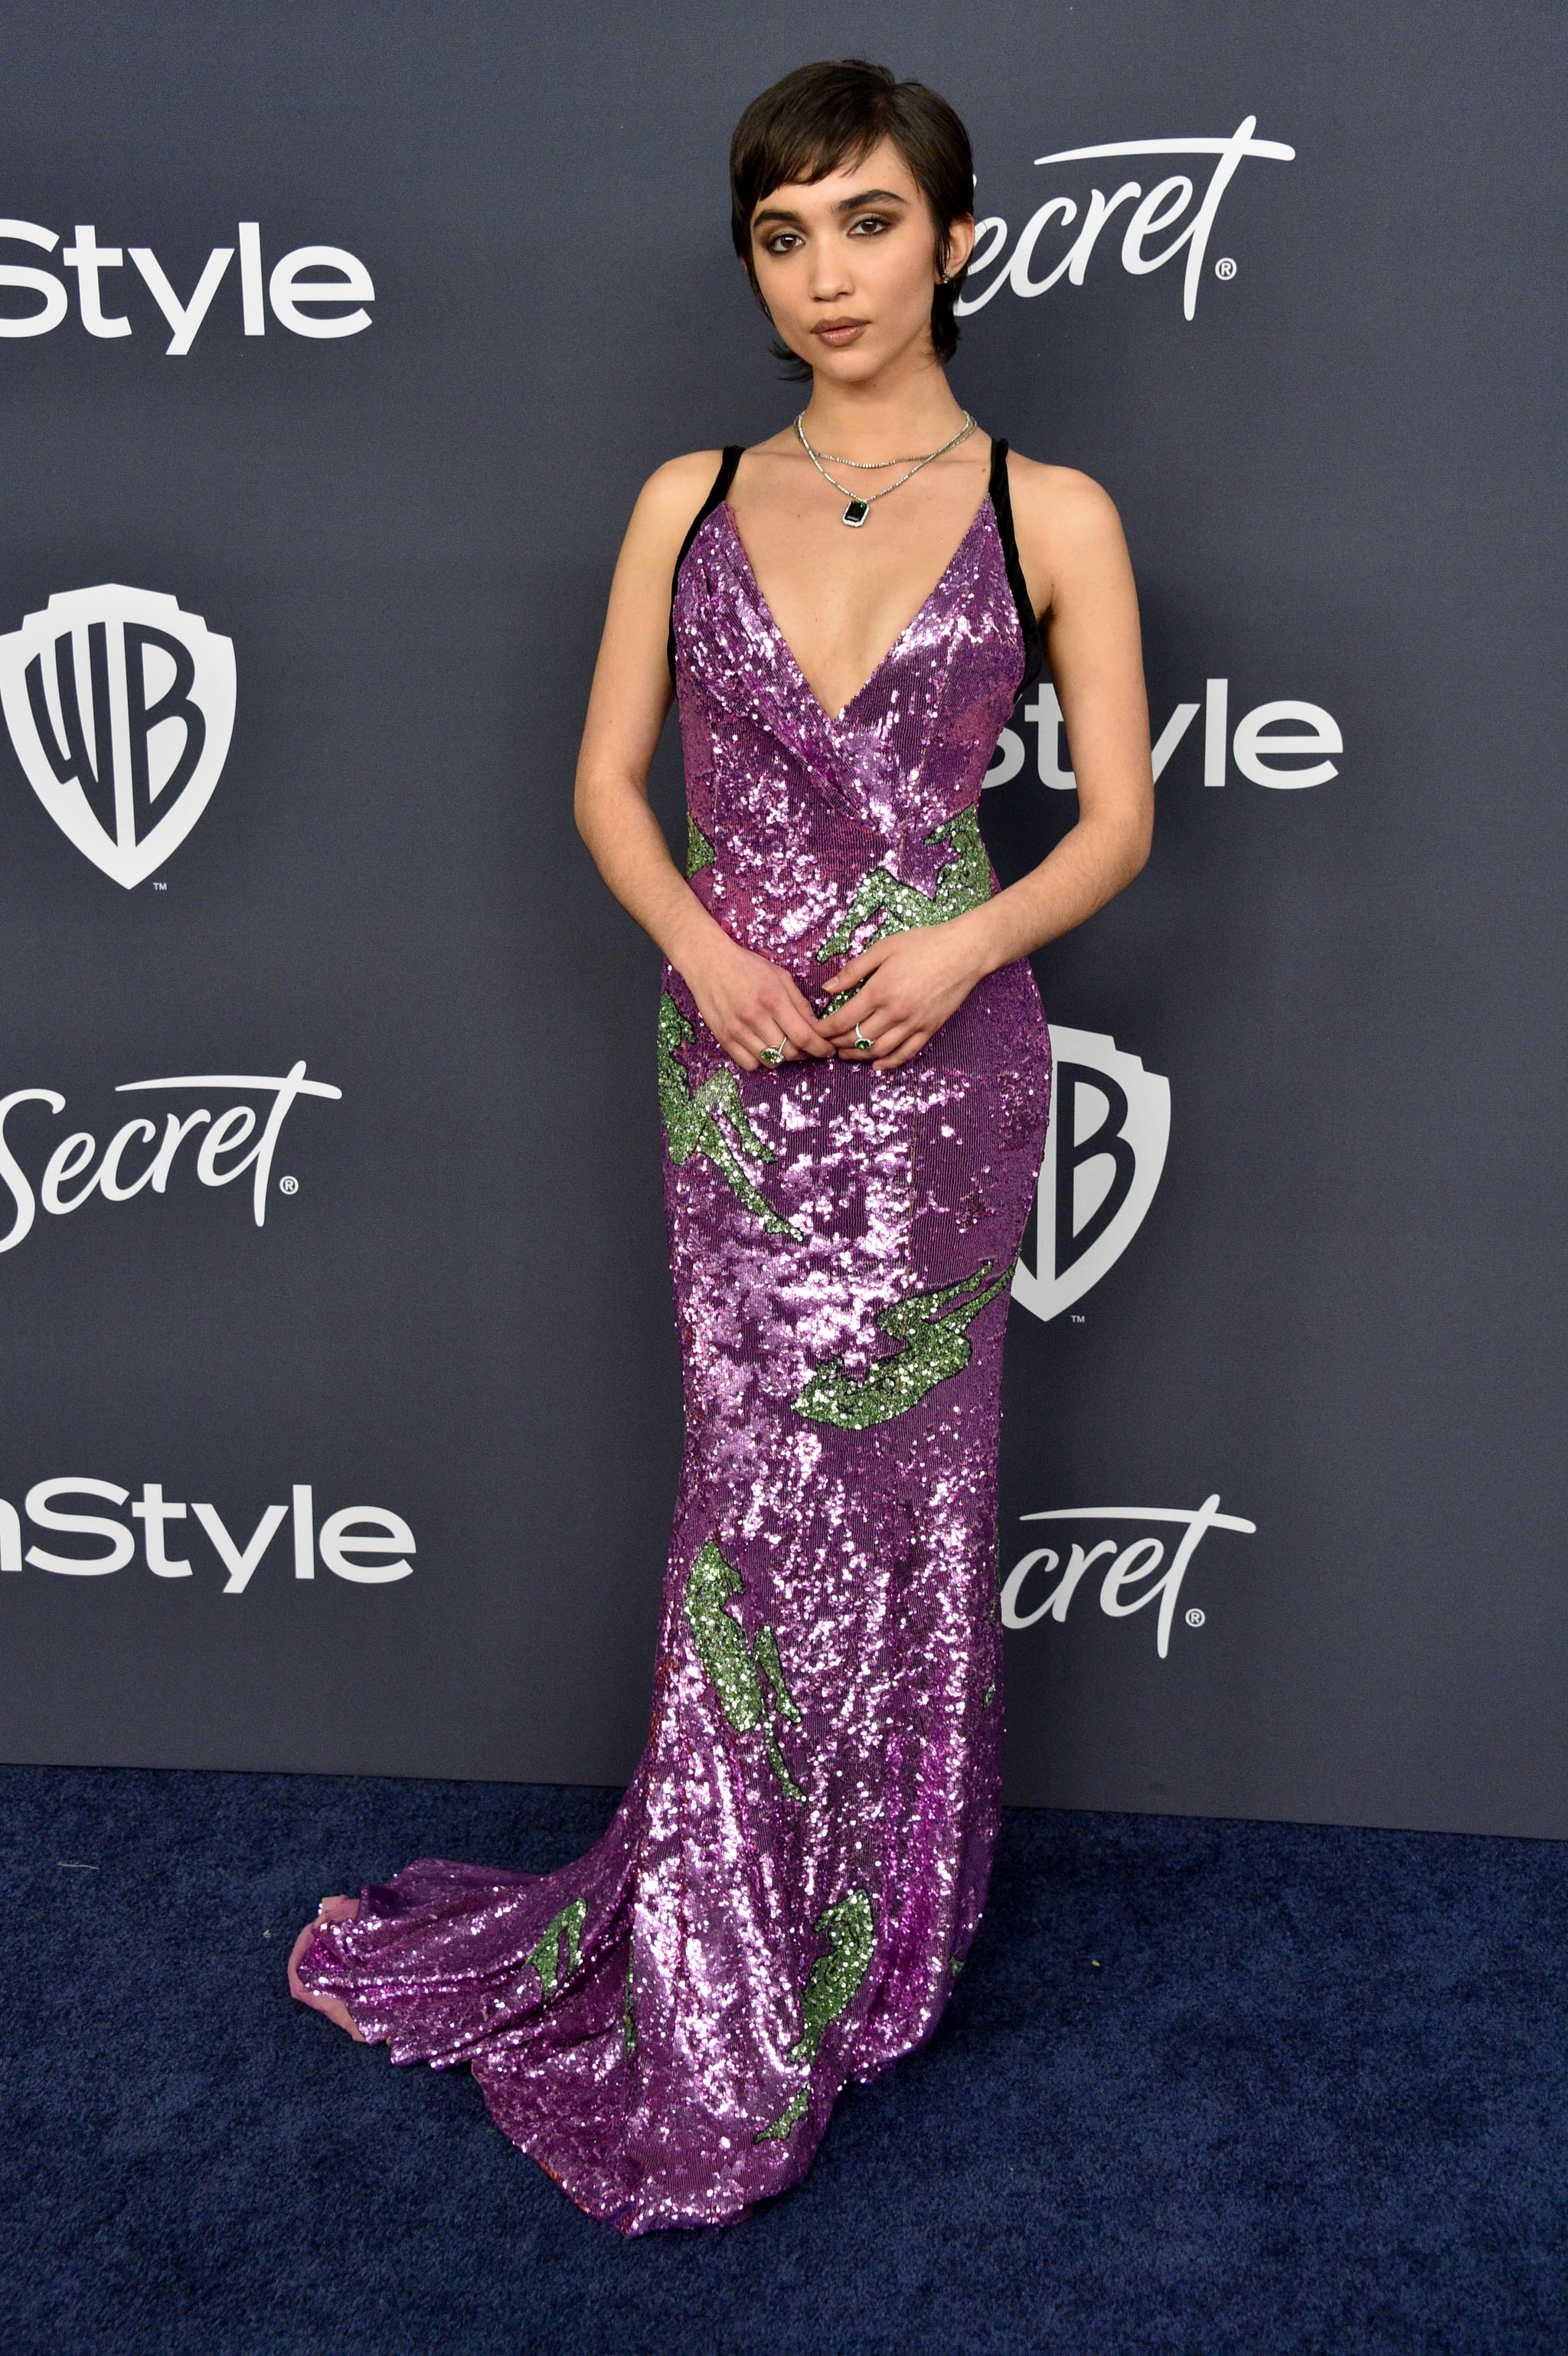 Rowan Blanchard at the 2020 Golden Globes Afterparty | The Best Golden  Globes Looks You Didn't See on the Red Carpet Were All at the Afterparties  | POPSUGAR Fashion Photo 31